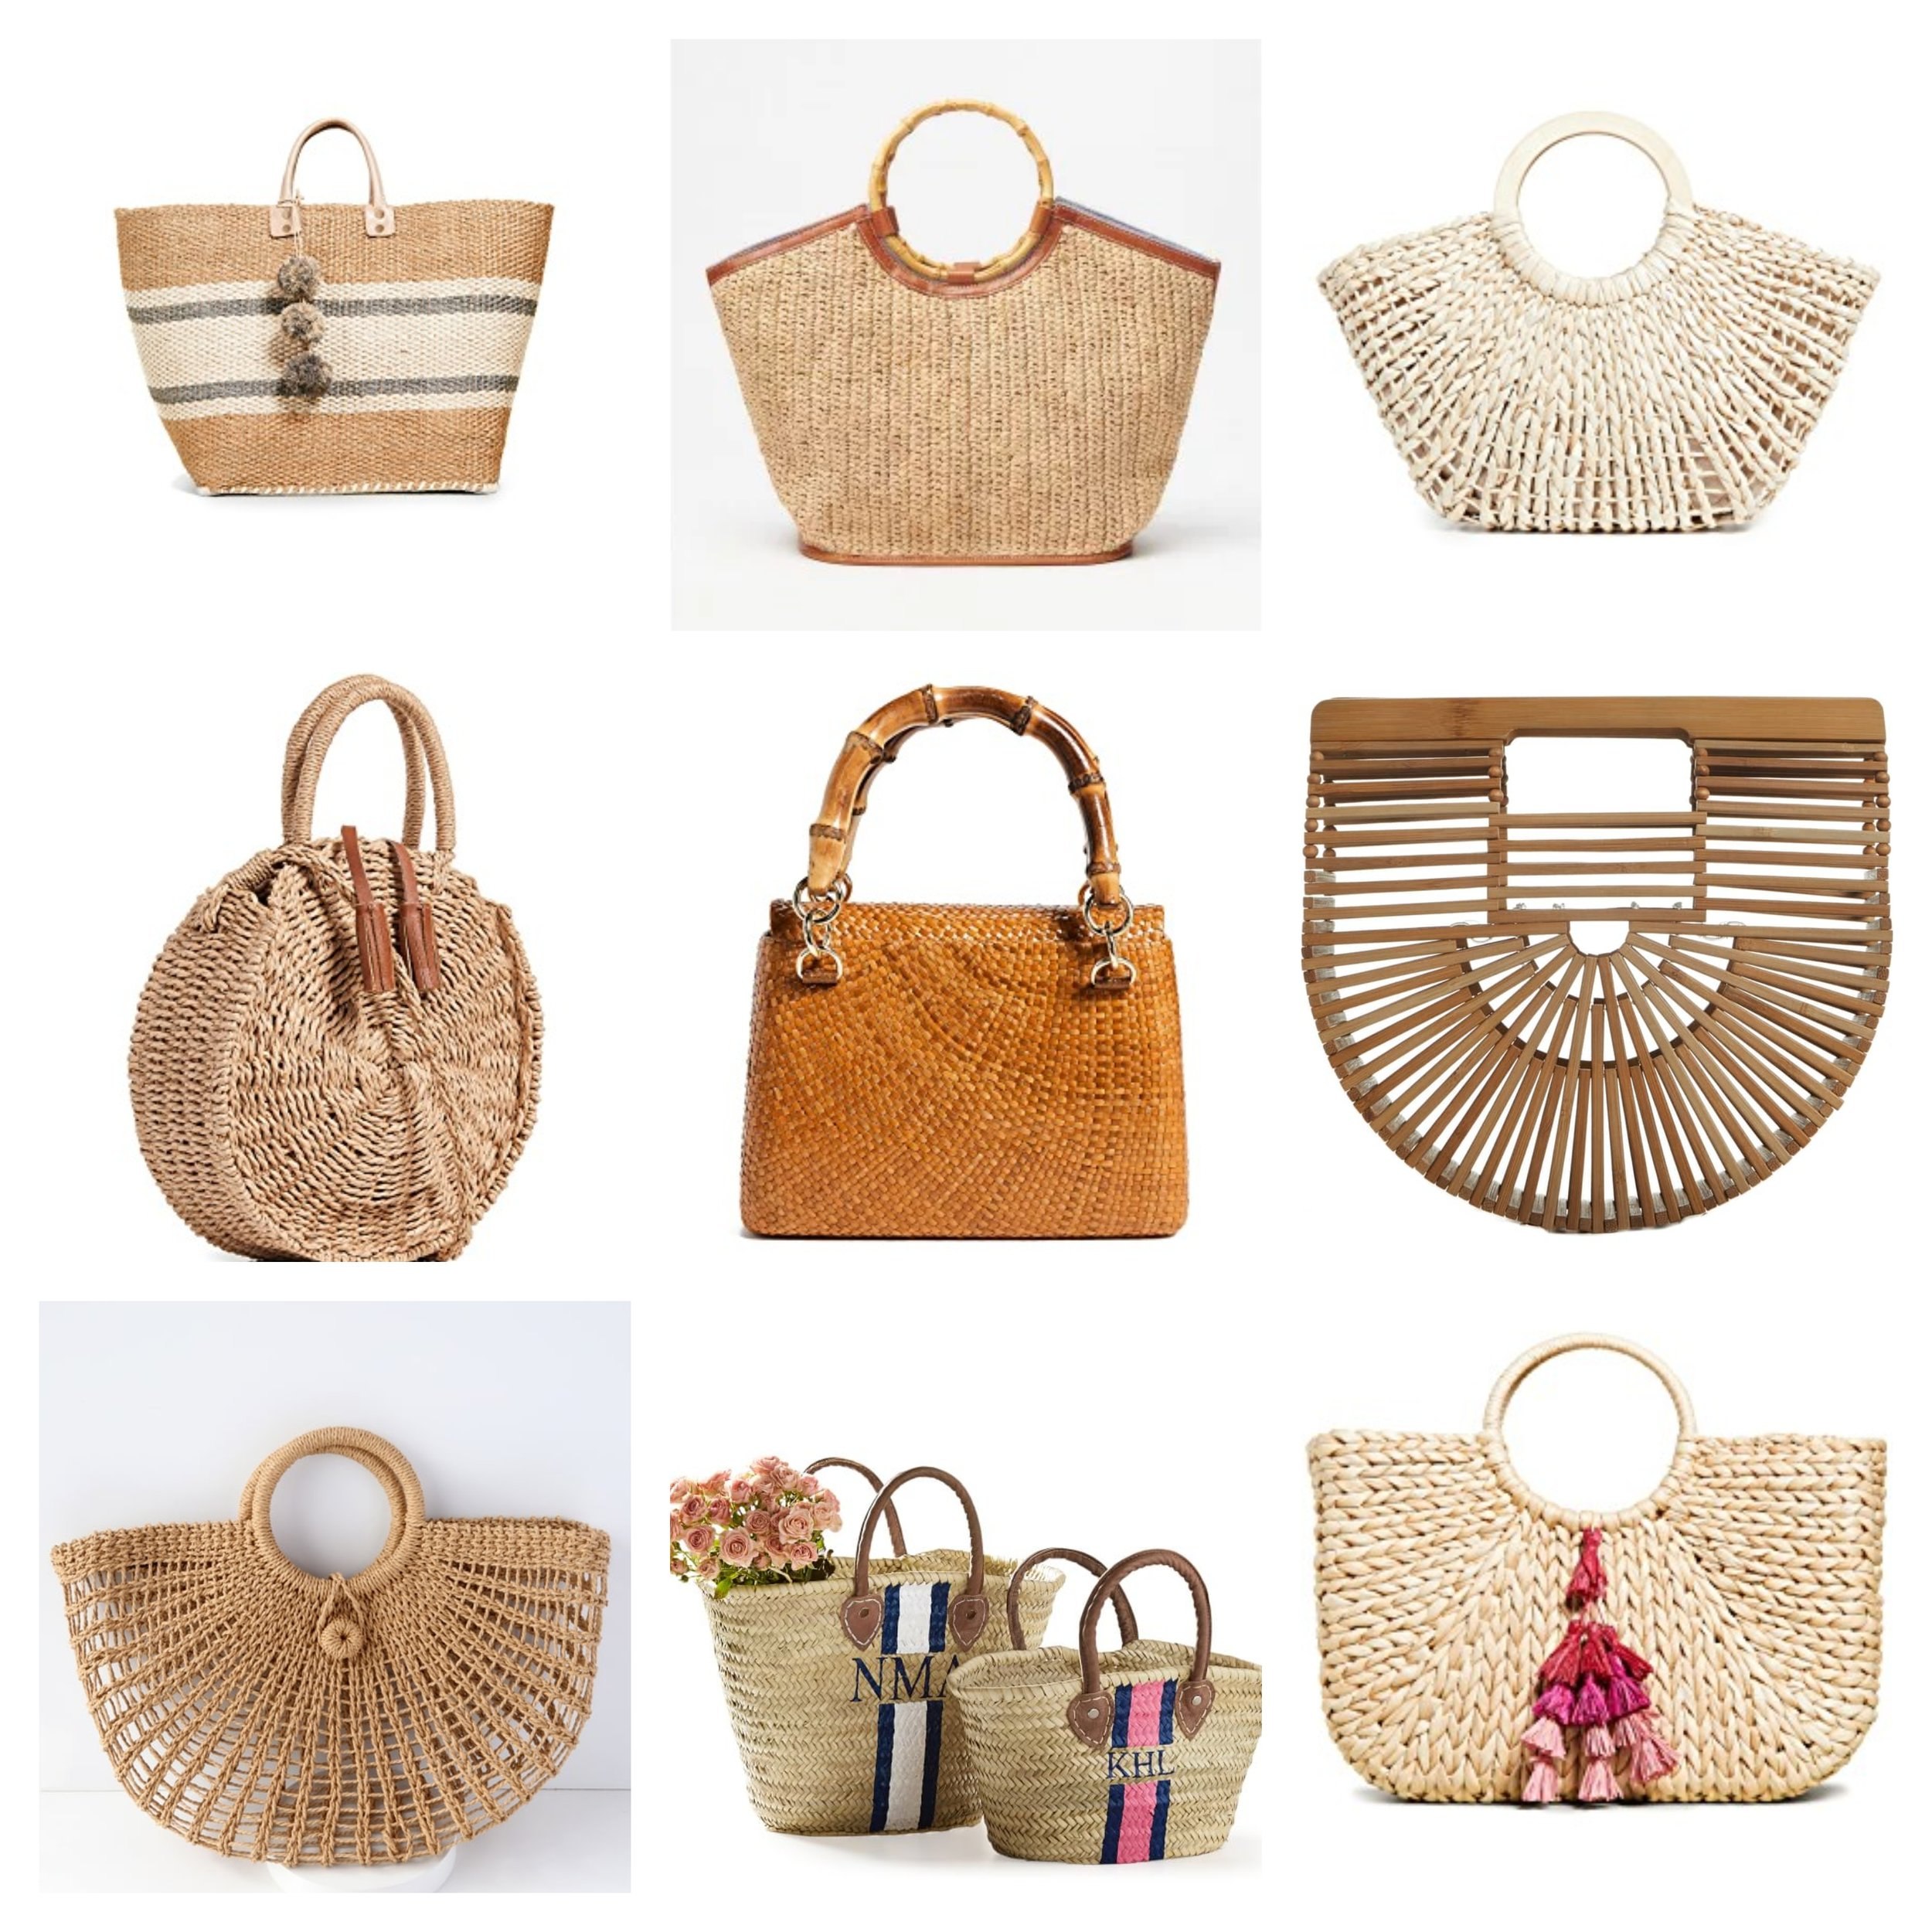 Photo Credit: Line 1 -  Mar y Sol Cyprus Tote / Tanya Tote /  Hat Attack Fan Bag   Line 2 -  Hat Attack Global Crossbody Bag /  Serpui Marie Leona Found Matte Bag  /  Cult Gia Mini Ark Handbag   Line 3 -  Market Marvel Woven Tote /  Hand Painted Straw Bag /  Hat Attack Round Handle Bag